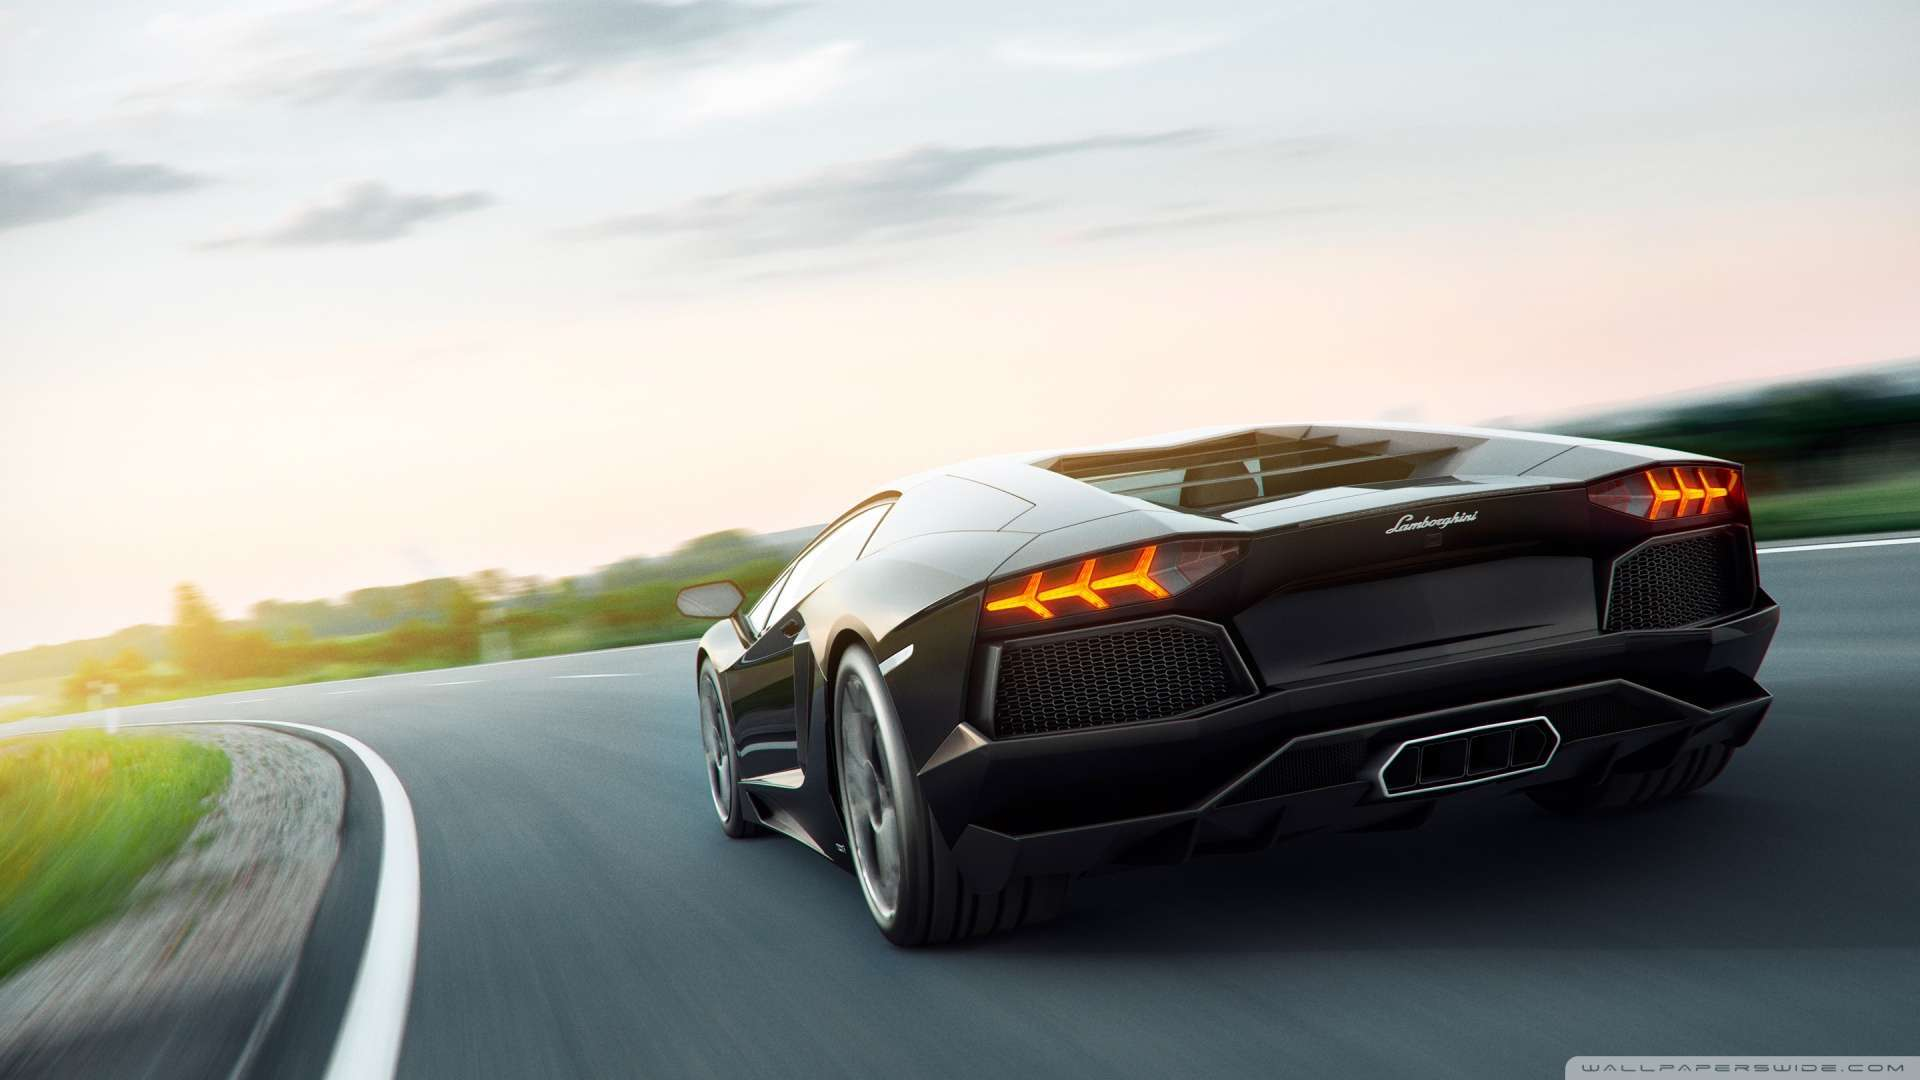 Wallpaper Lamborghini Aventador Art Wallpaper 1080p HD Upload at 1920x1080